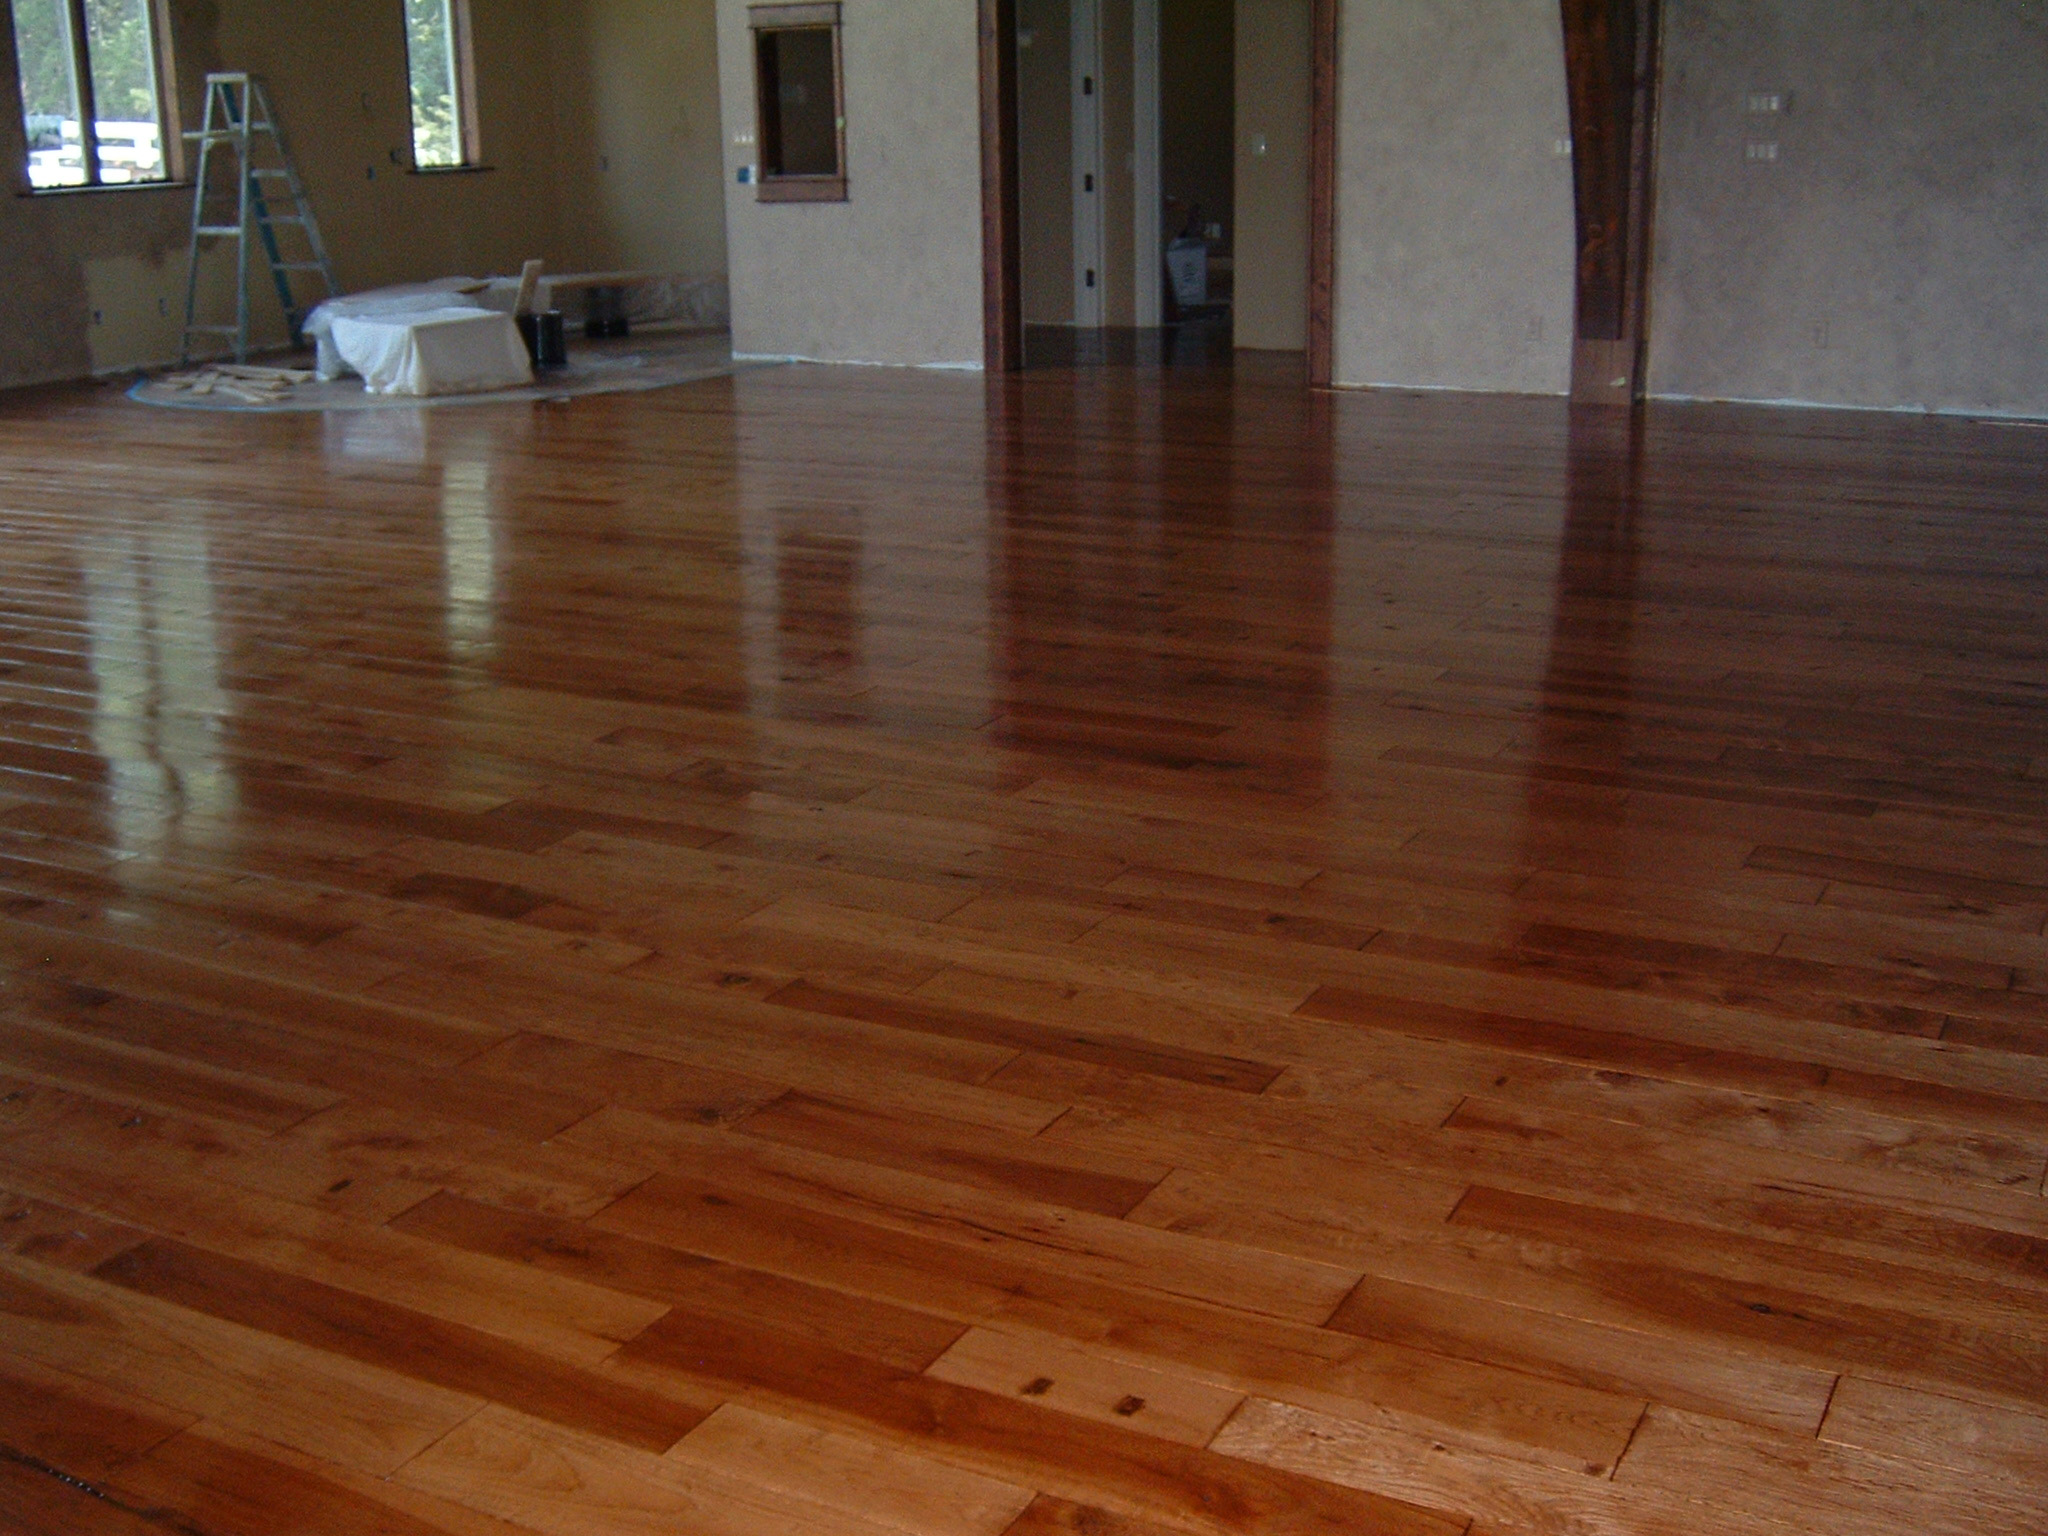 Maintenance ozark hardwood flooring for At floor or on floor